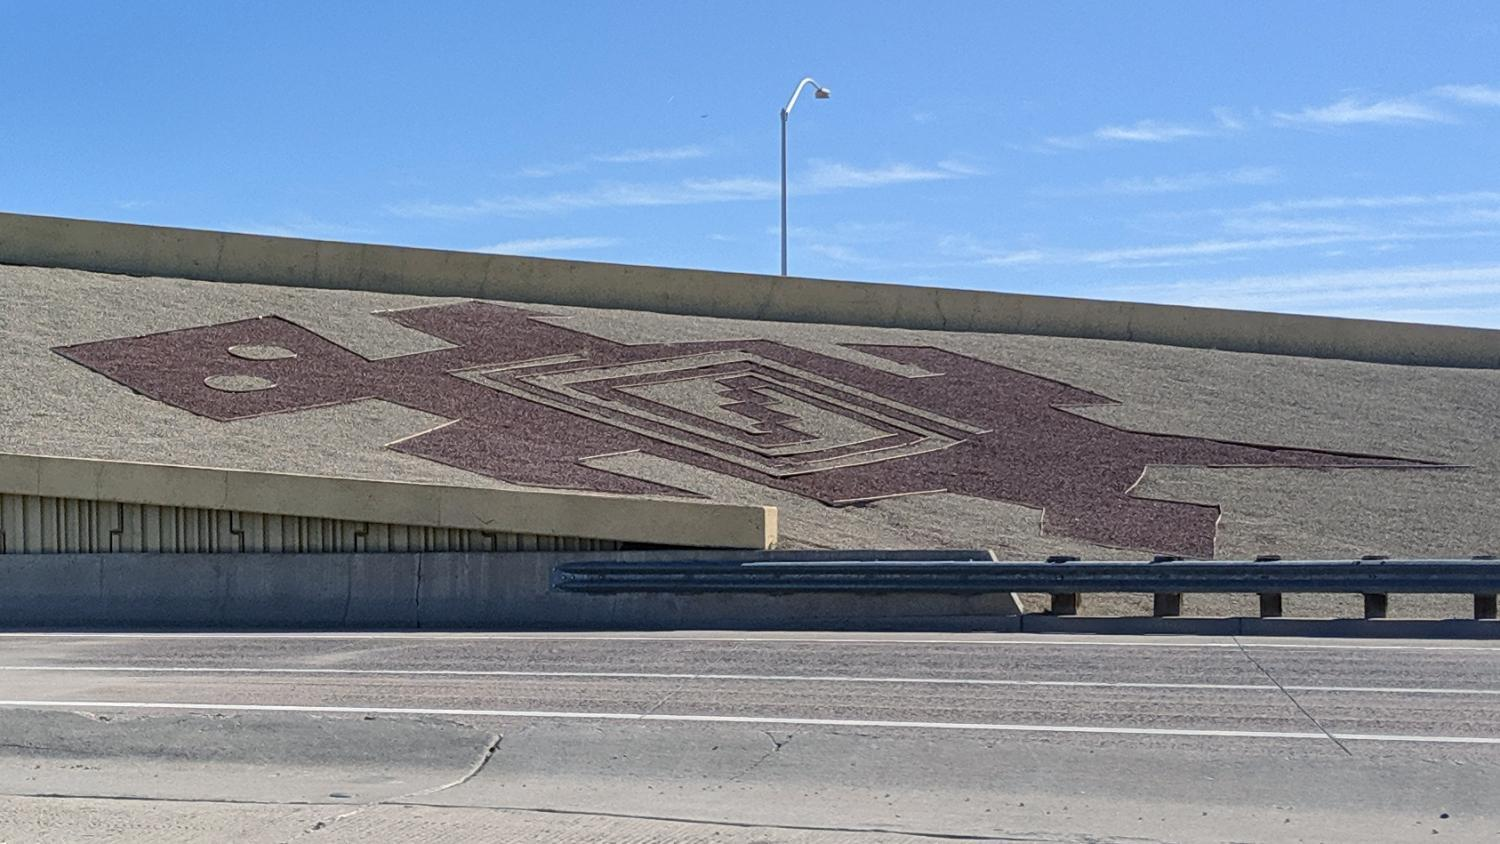 A decoration on an eastbound freeway ramp near Phoenix Sky Harbor Airport